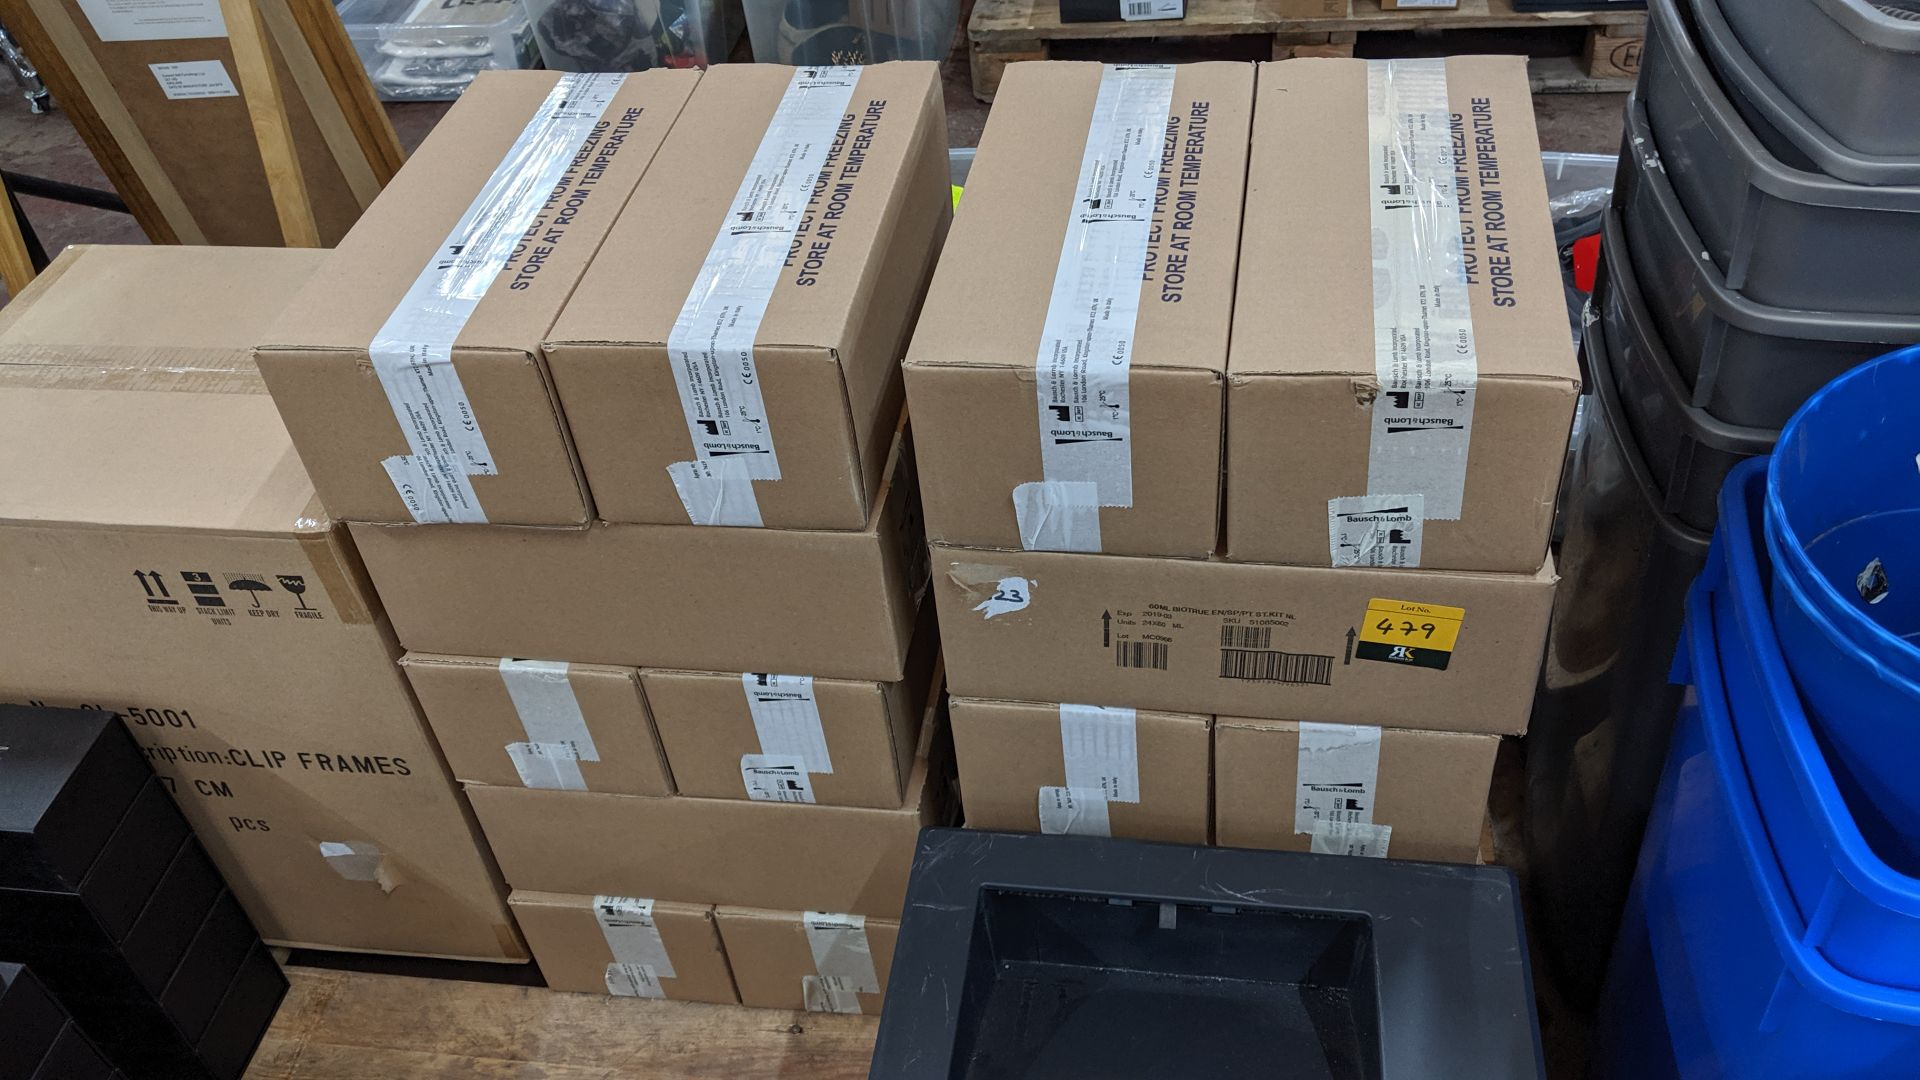 Lot 479 - 20 boxes, each containing 20 off 60ml bottles of Bausch & Lomb eye fluid, expiry date March 2019.